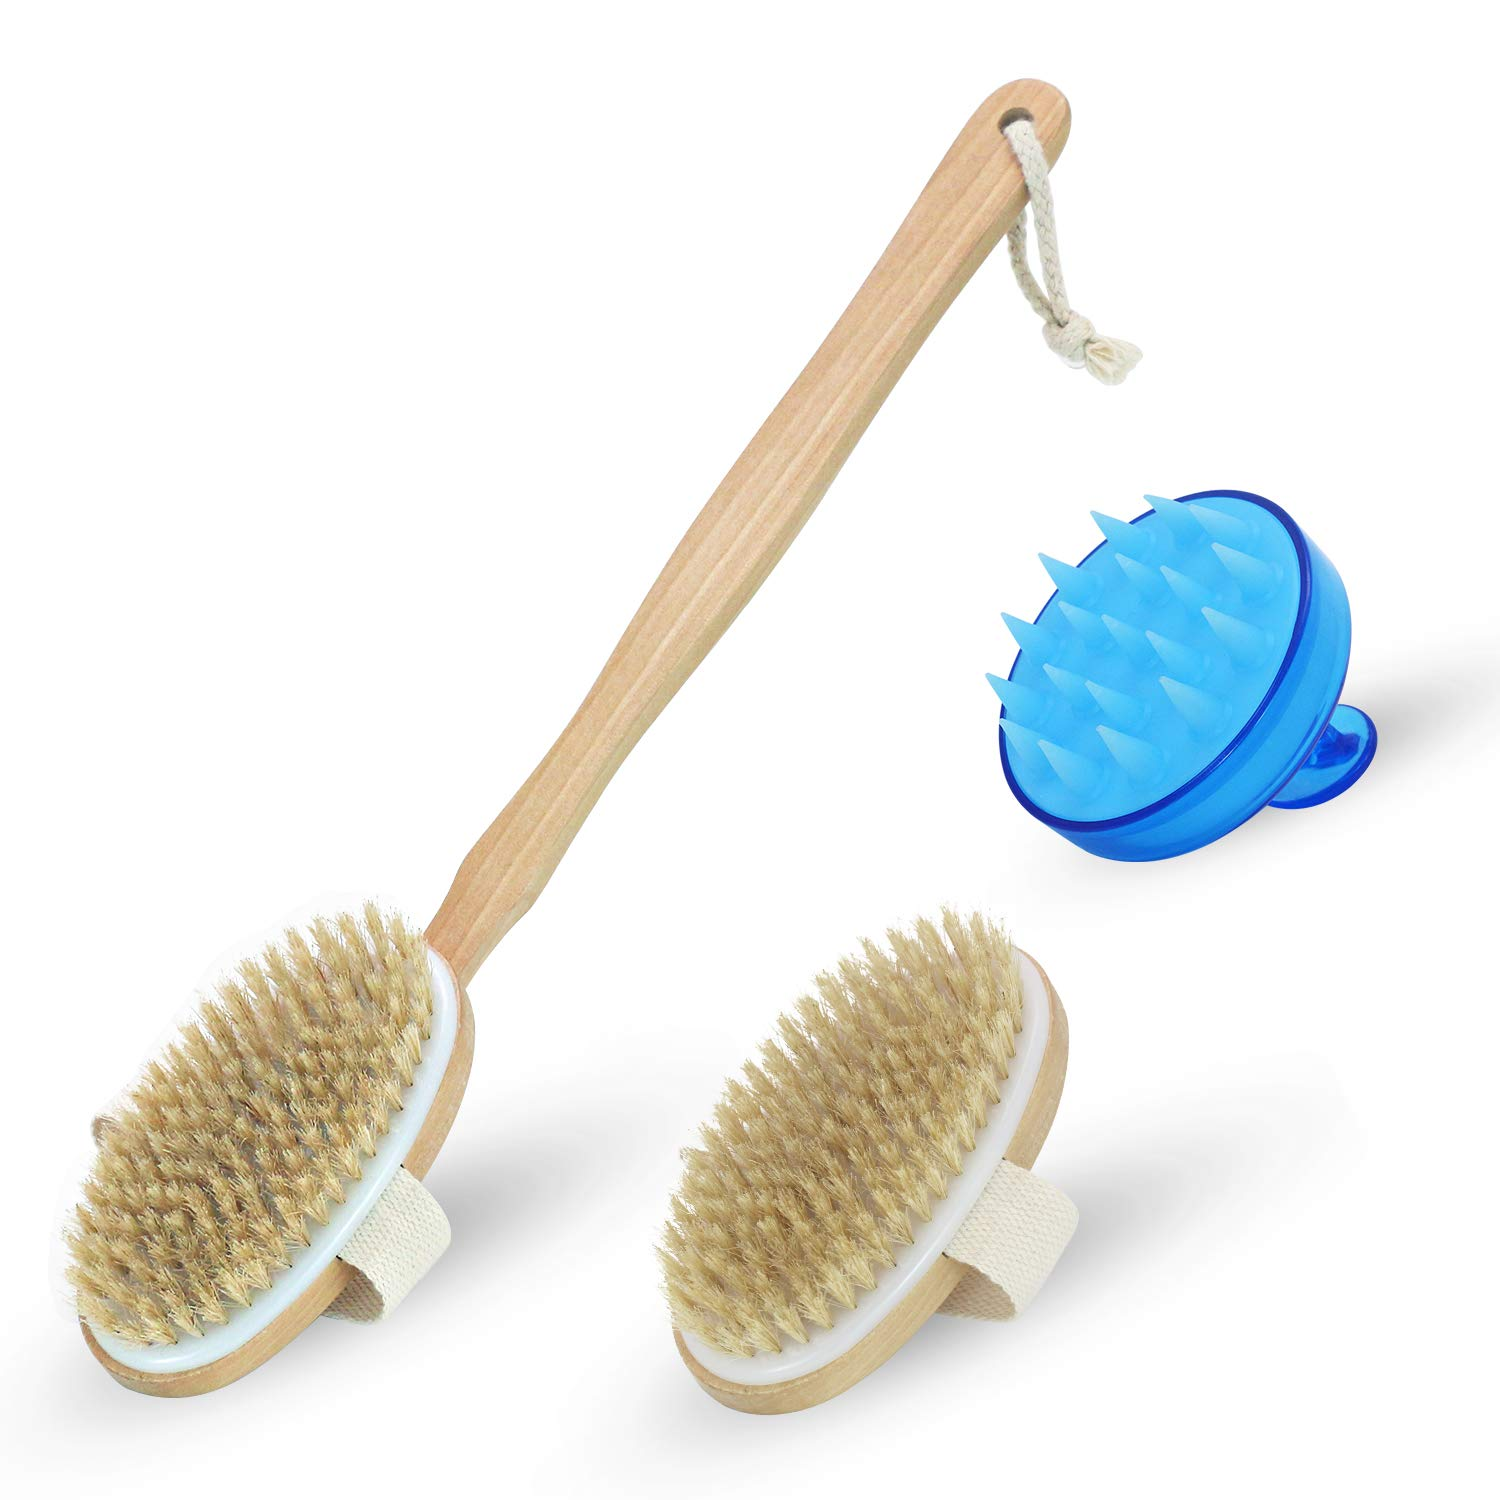 Body Dry Bristle Scrub Brush: Natural Shower Exfoliating Skin Scrubber Brush|Men and Women Cellulite and Lymphatic Massage Brush|Long Detachable Handle for Back Scratcher|HairMassage Kit